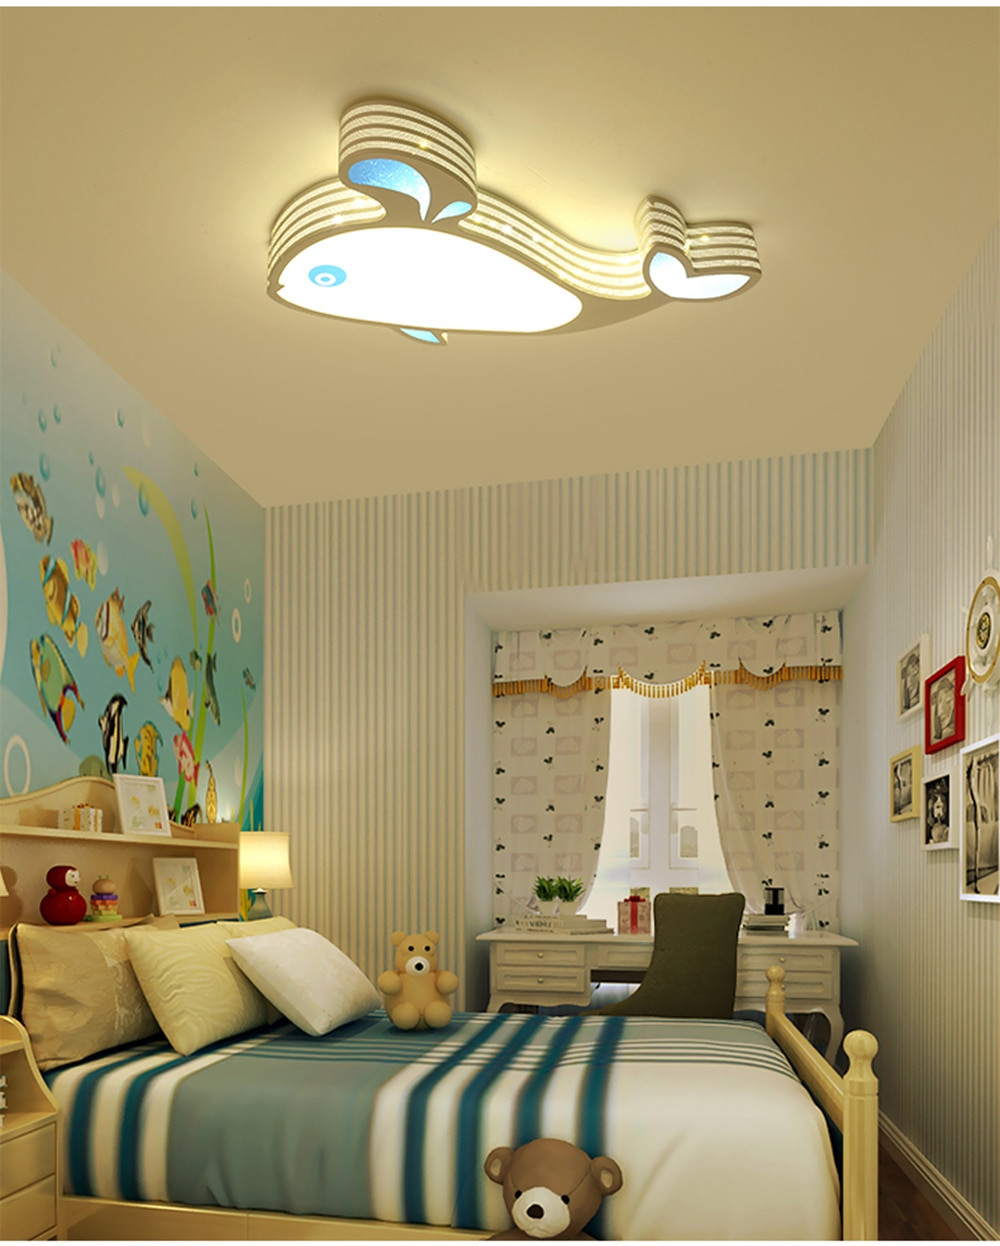 Children Bedroom Lights  HGhomeart kids lights bedroom lighting LED Ceiling Lamp